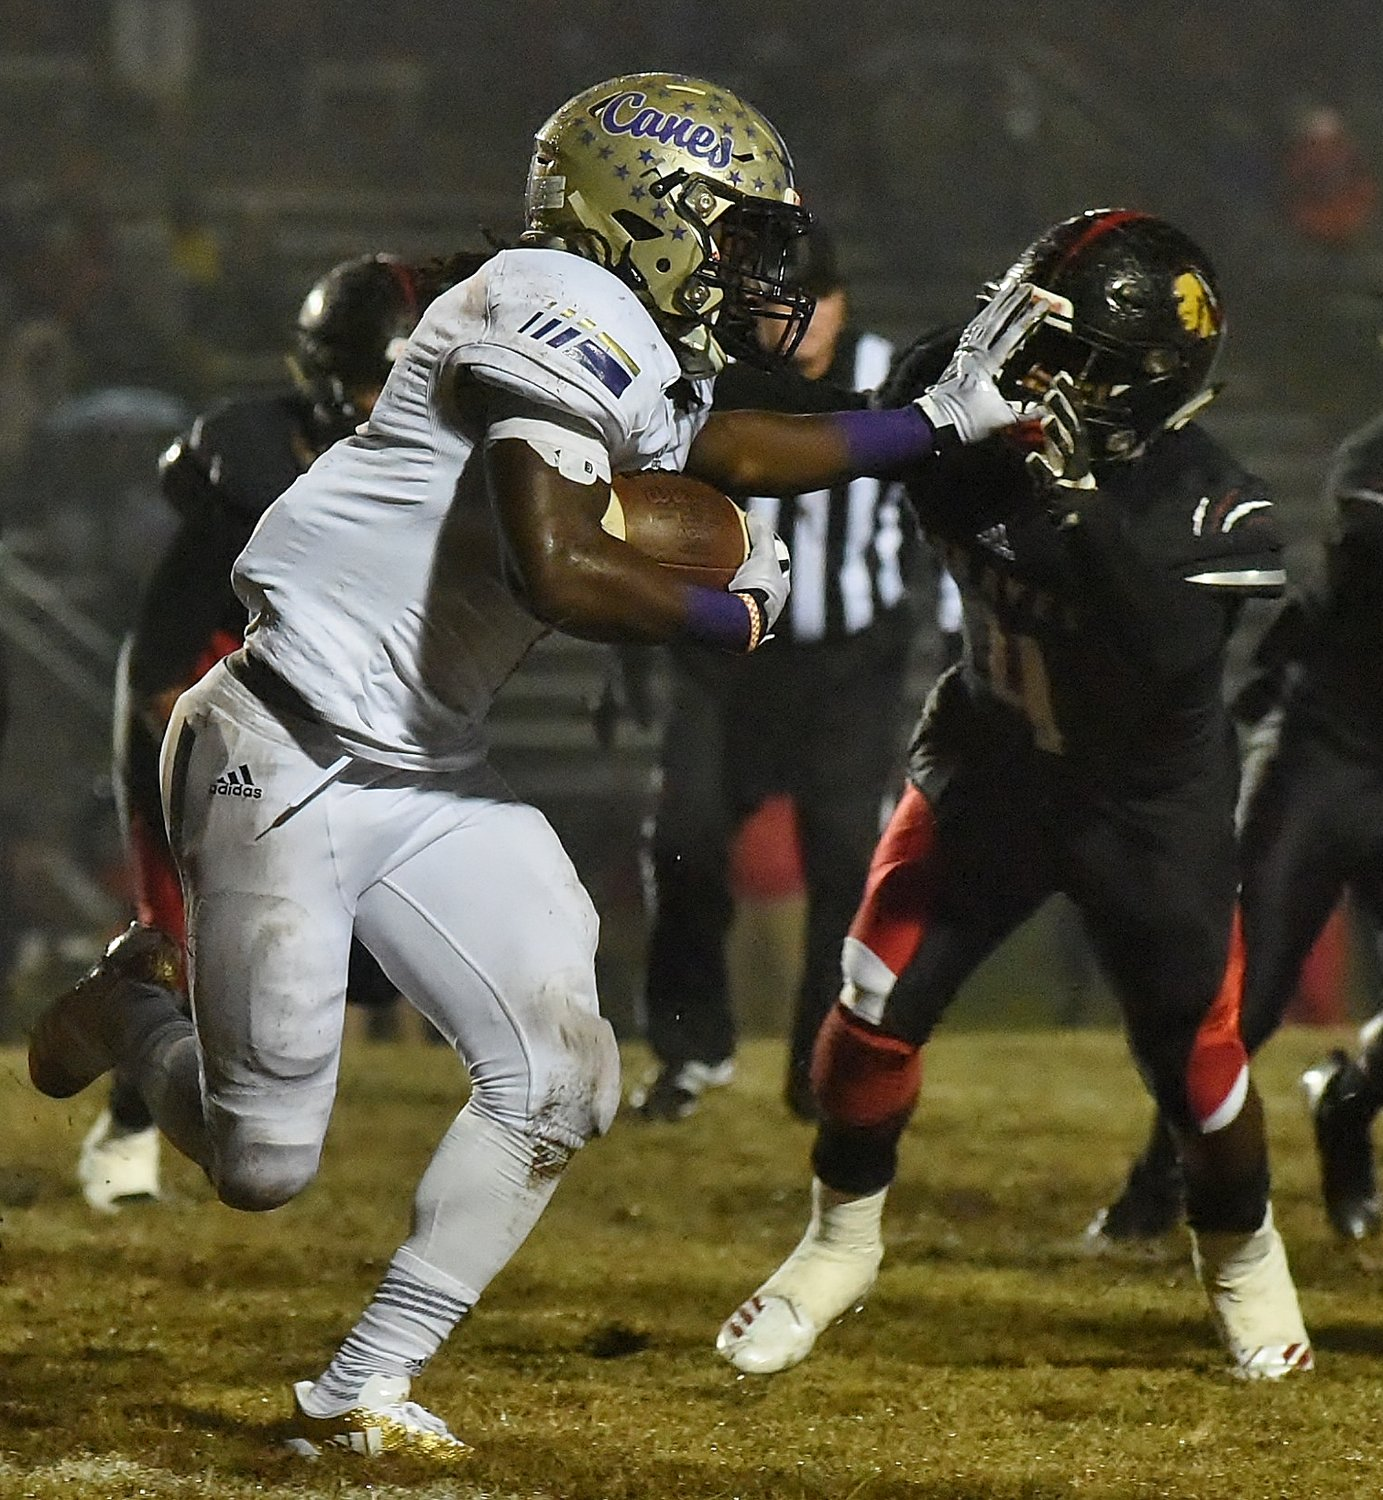 Cartersville senior Marcus Gary stiff-arms a Baldwin defender during a Class 4A state quarterfinal this past season. Gary earned all-county offensive player of the year.